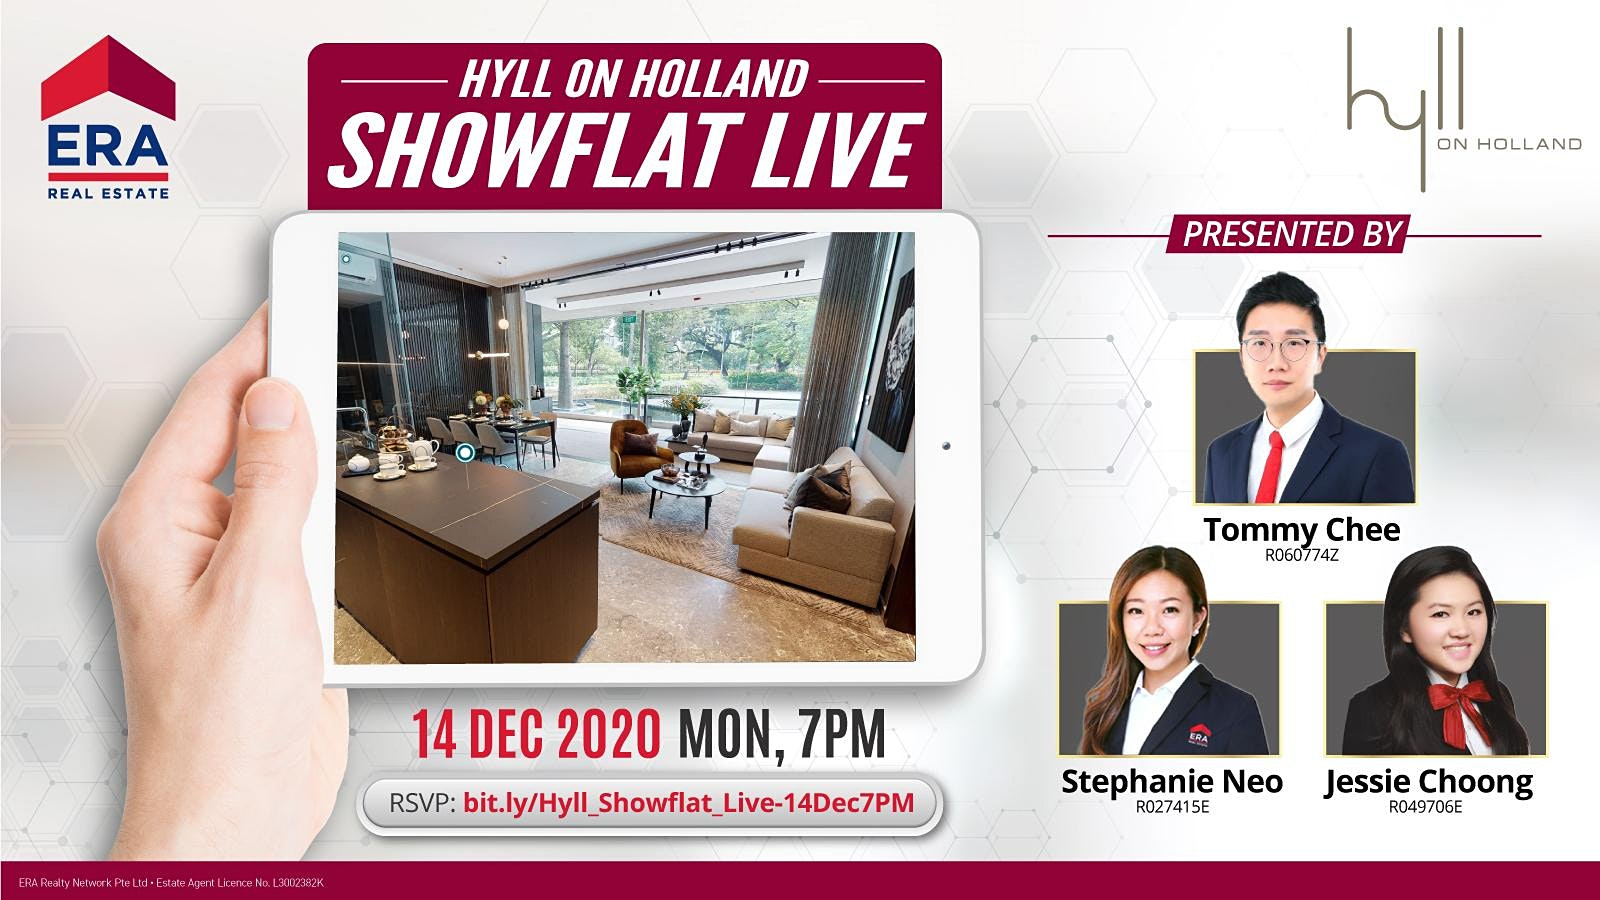 Hyll on Holland Showflat Live